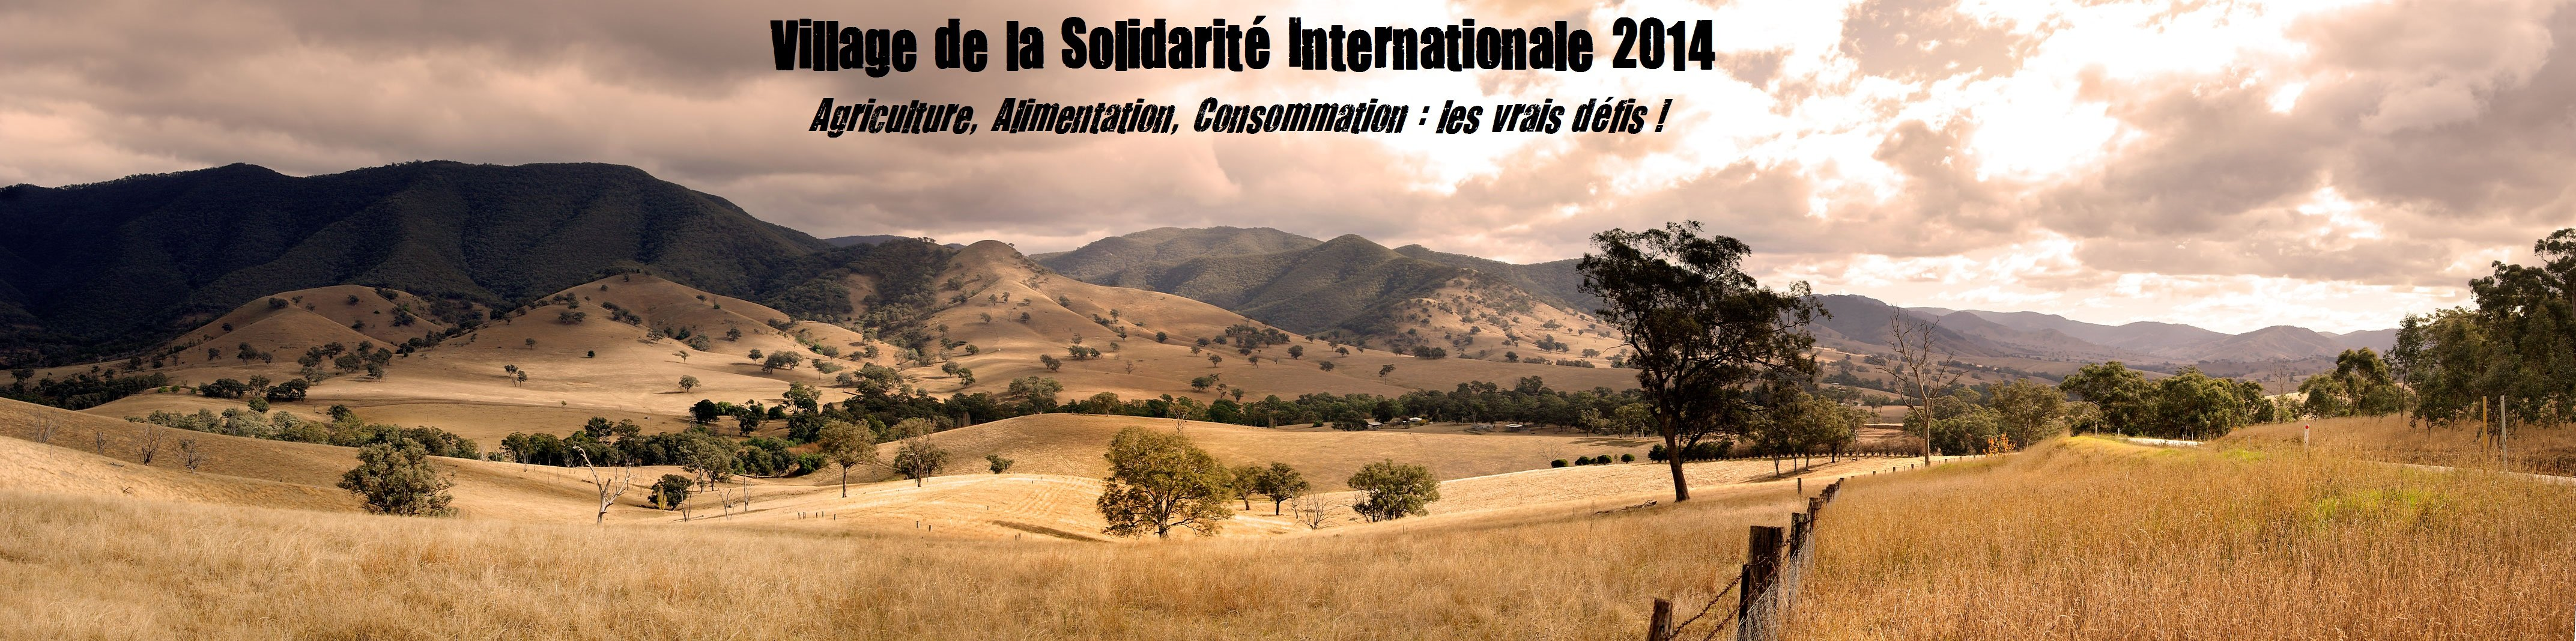 Village de la Solidarité Internationale 2014